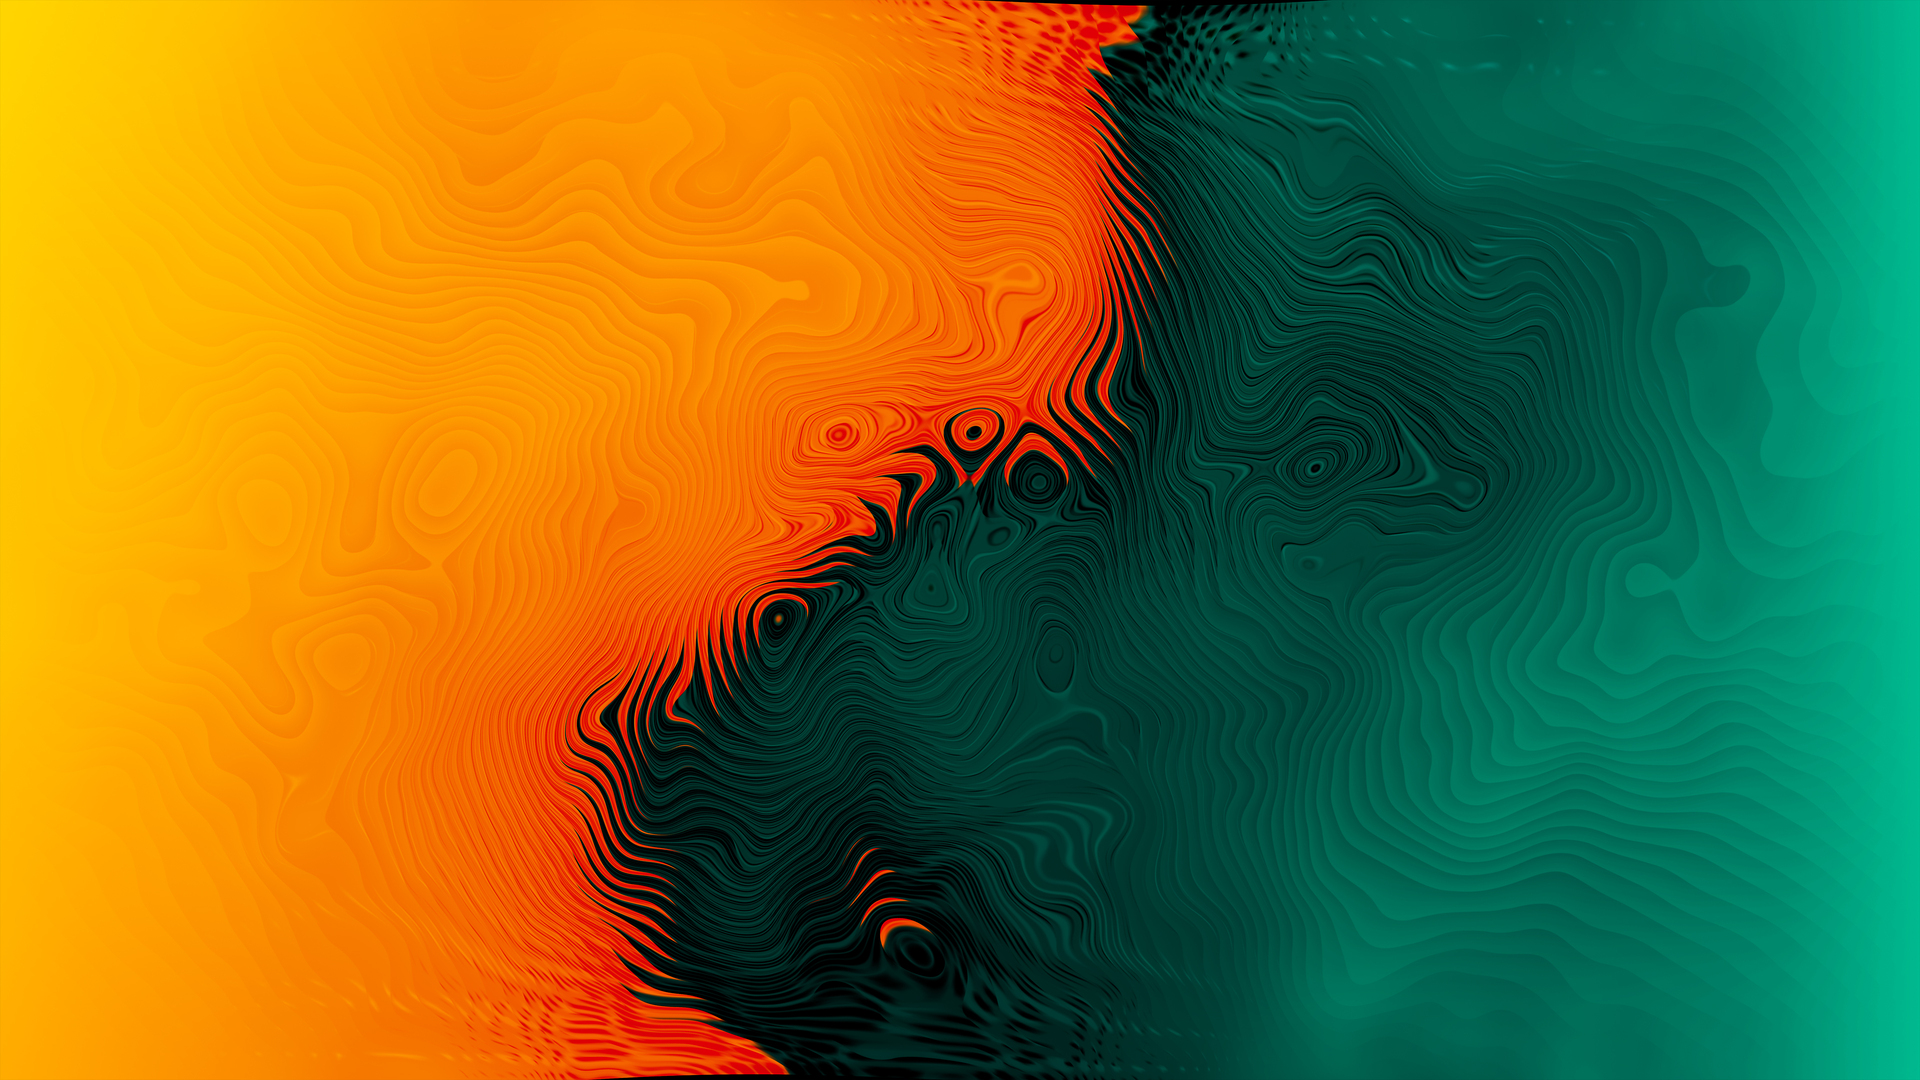 1920x1080 Orange Green Abstract 4k Laptop Full Hd 1080p Hd 4k Wallpapers Images Backgrounds Photos And Pictures